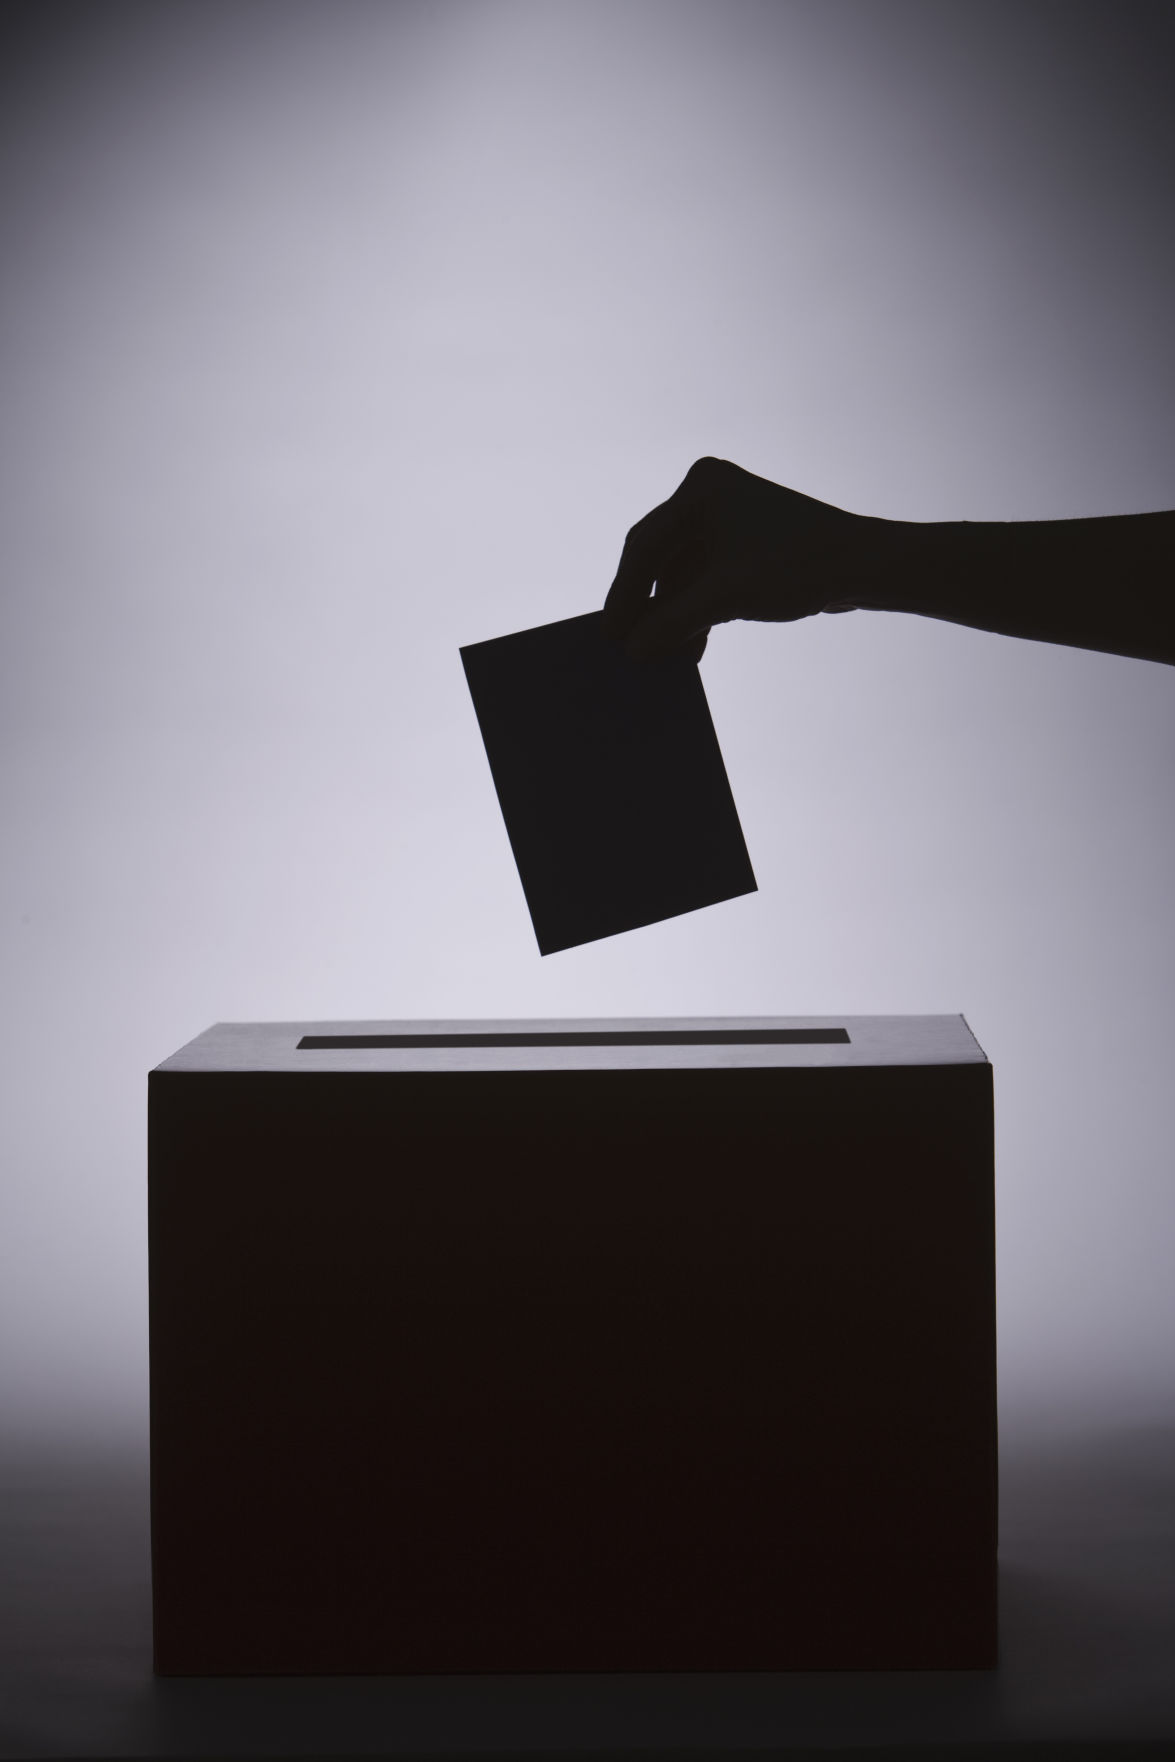 investigation launched after dead people are registered to vote in